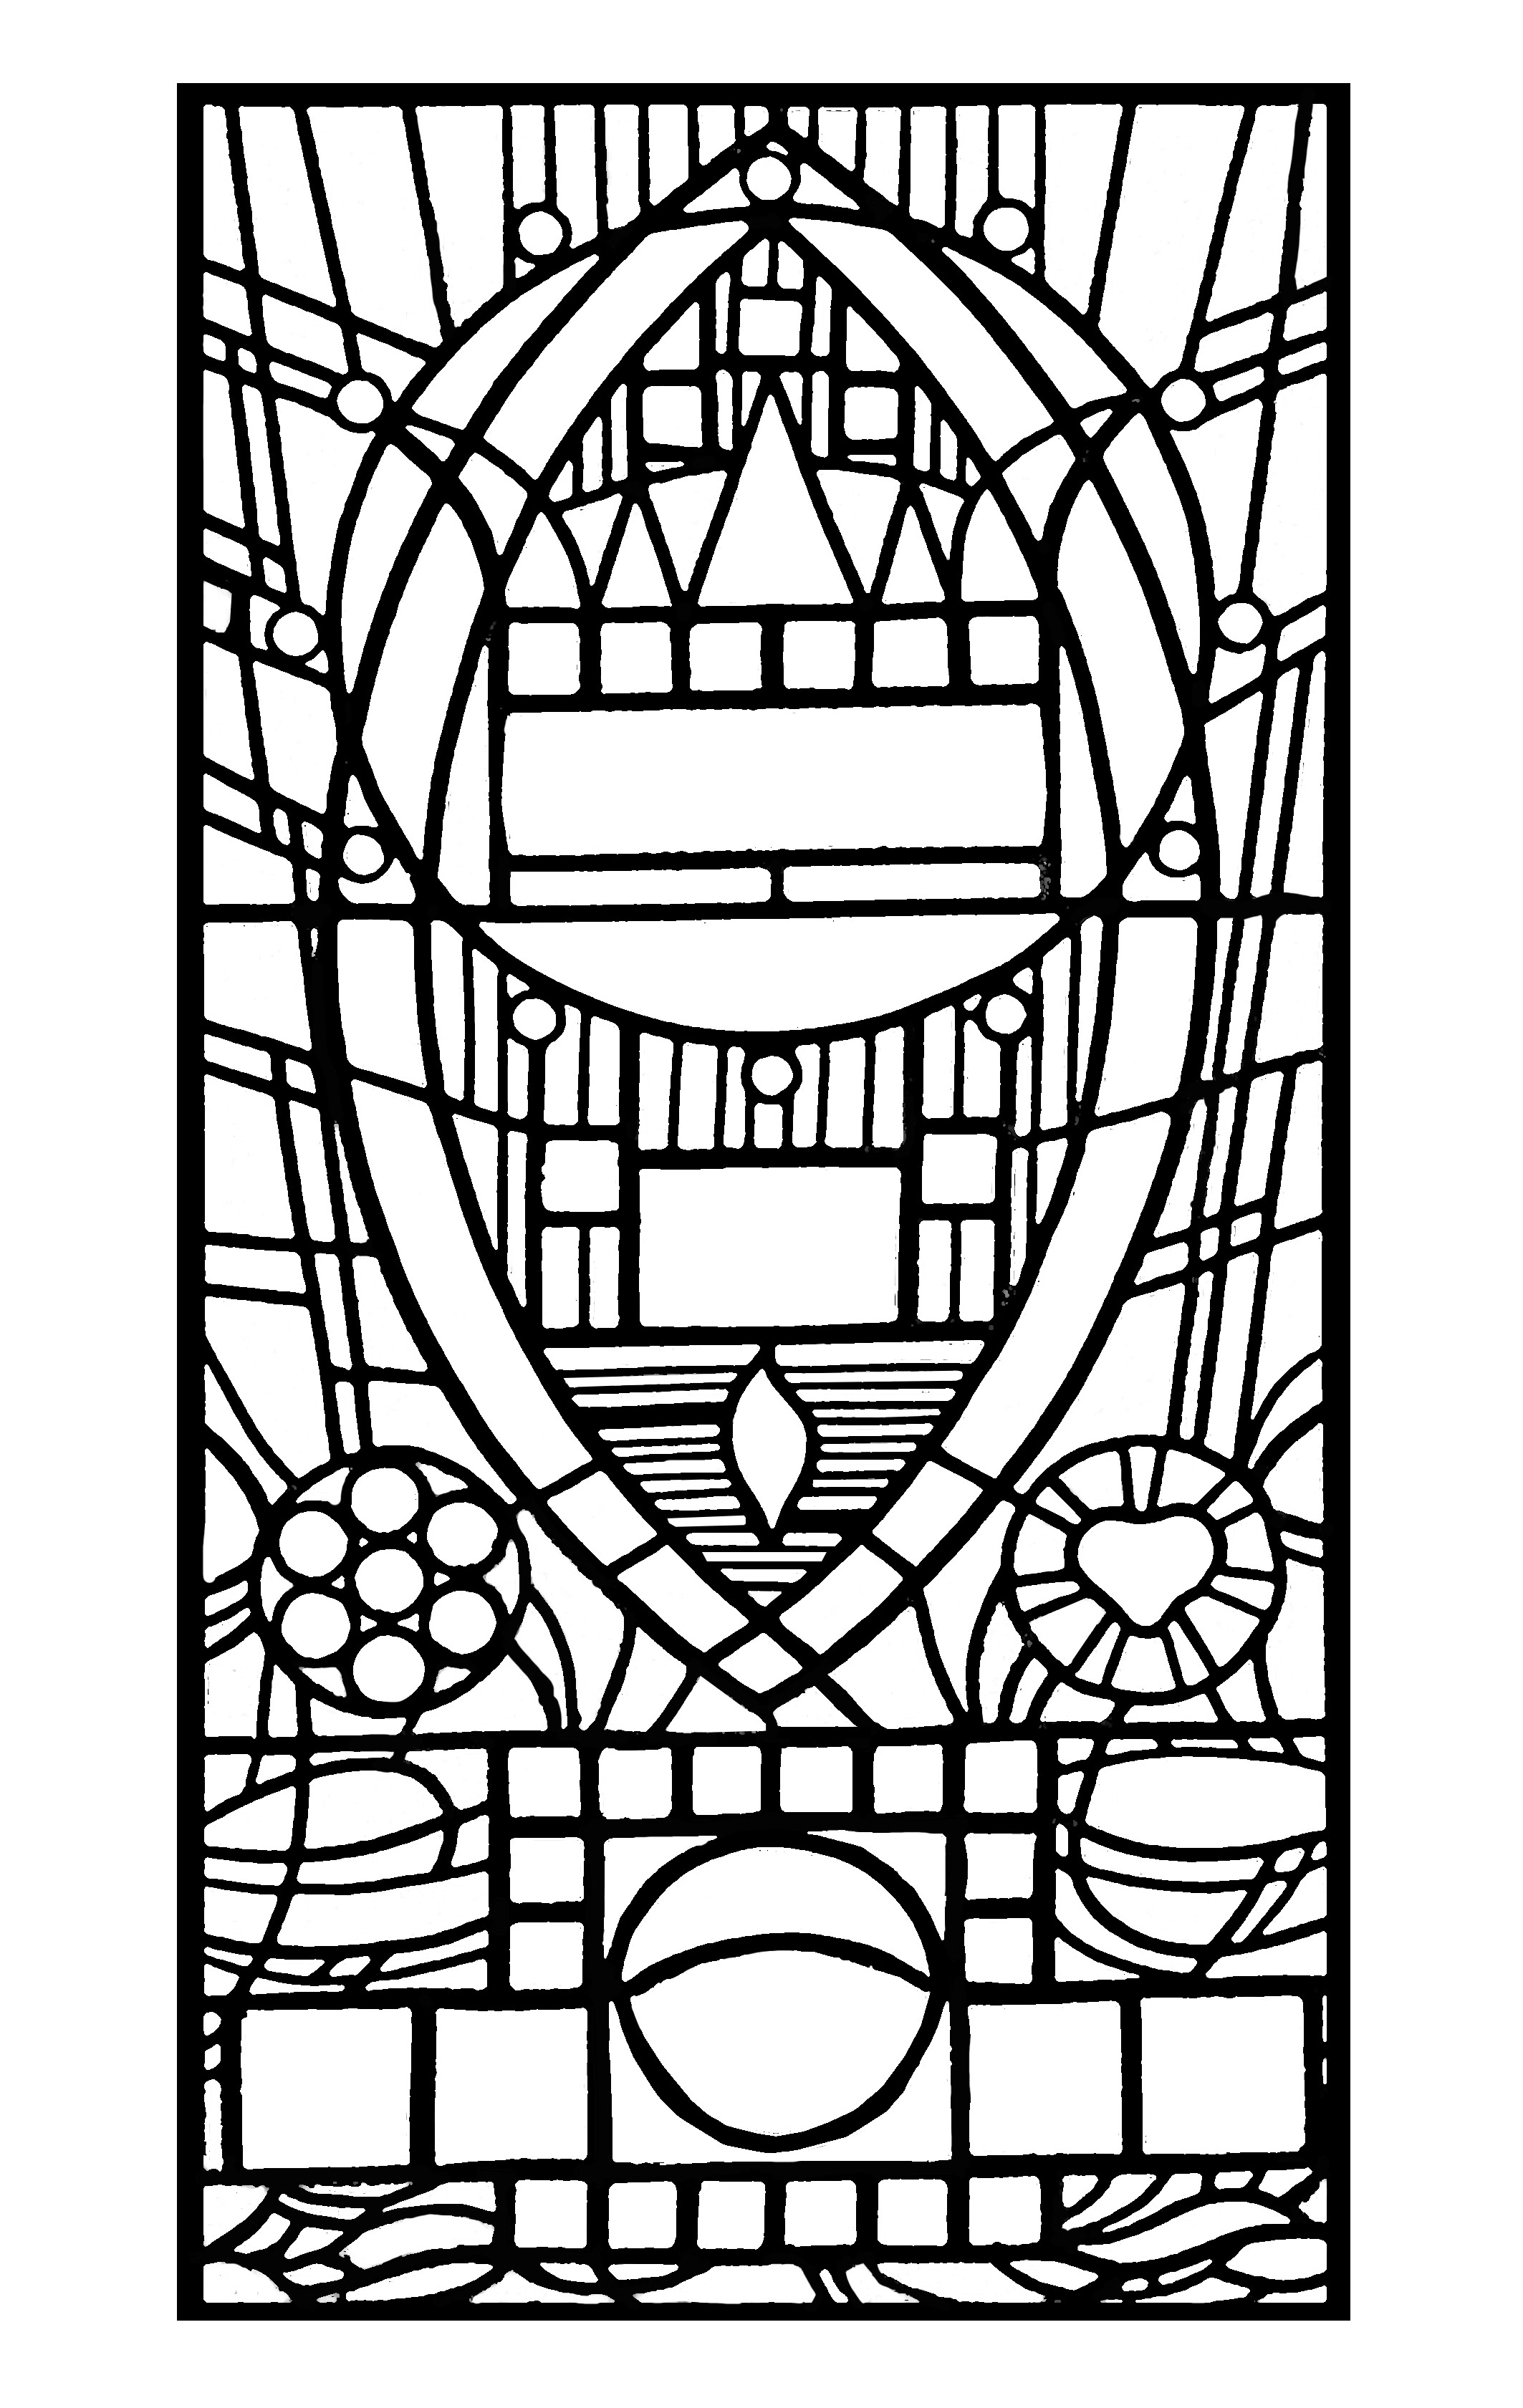 7 Sacraments Coloring Pages Free Download Best 7